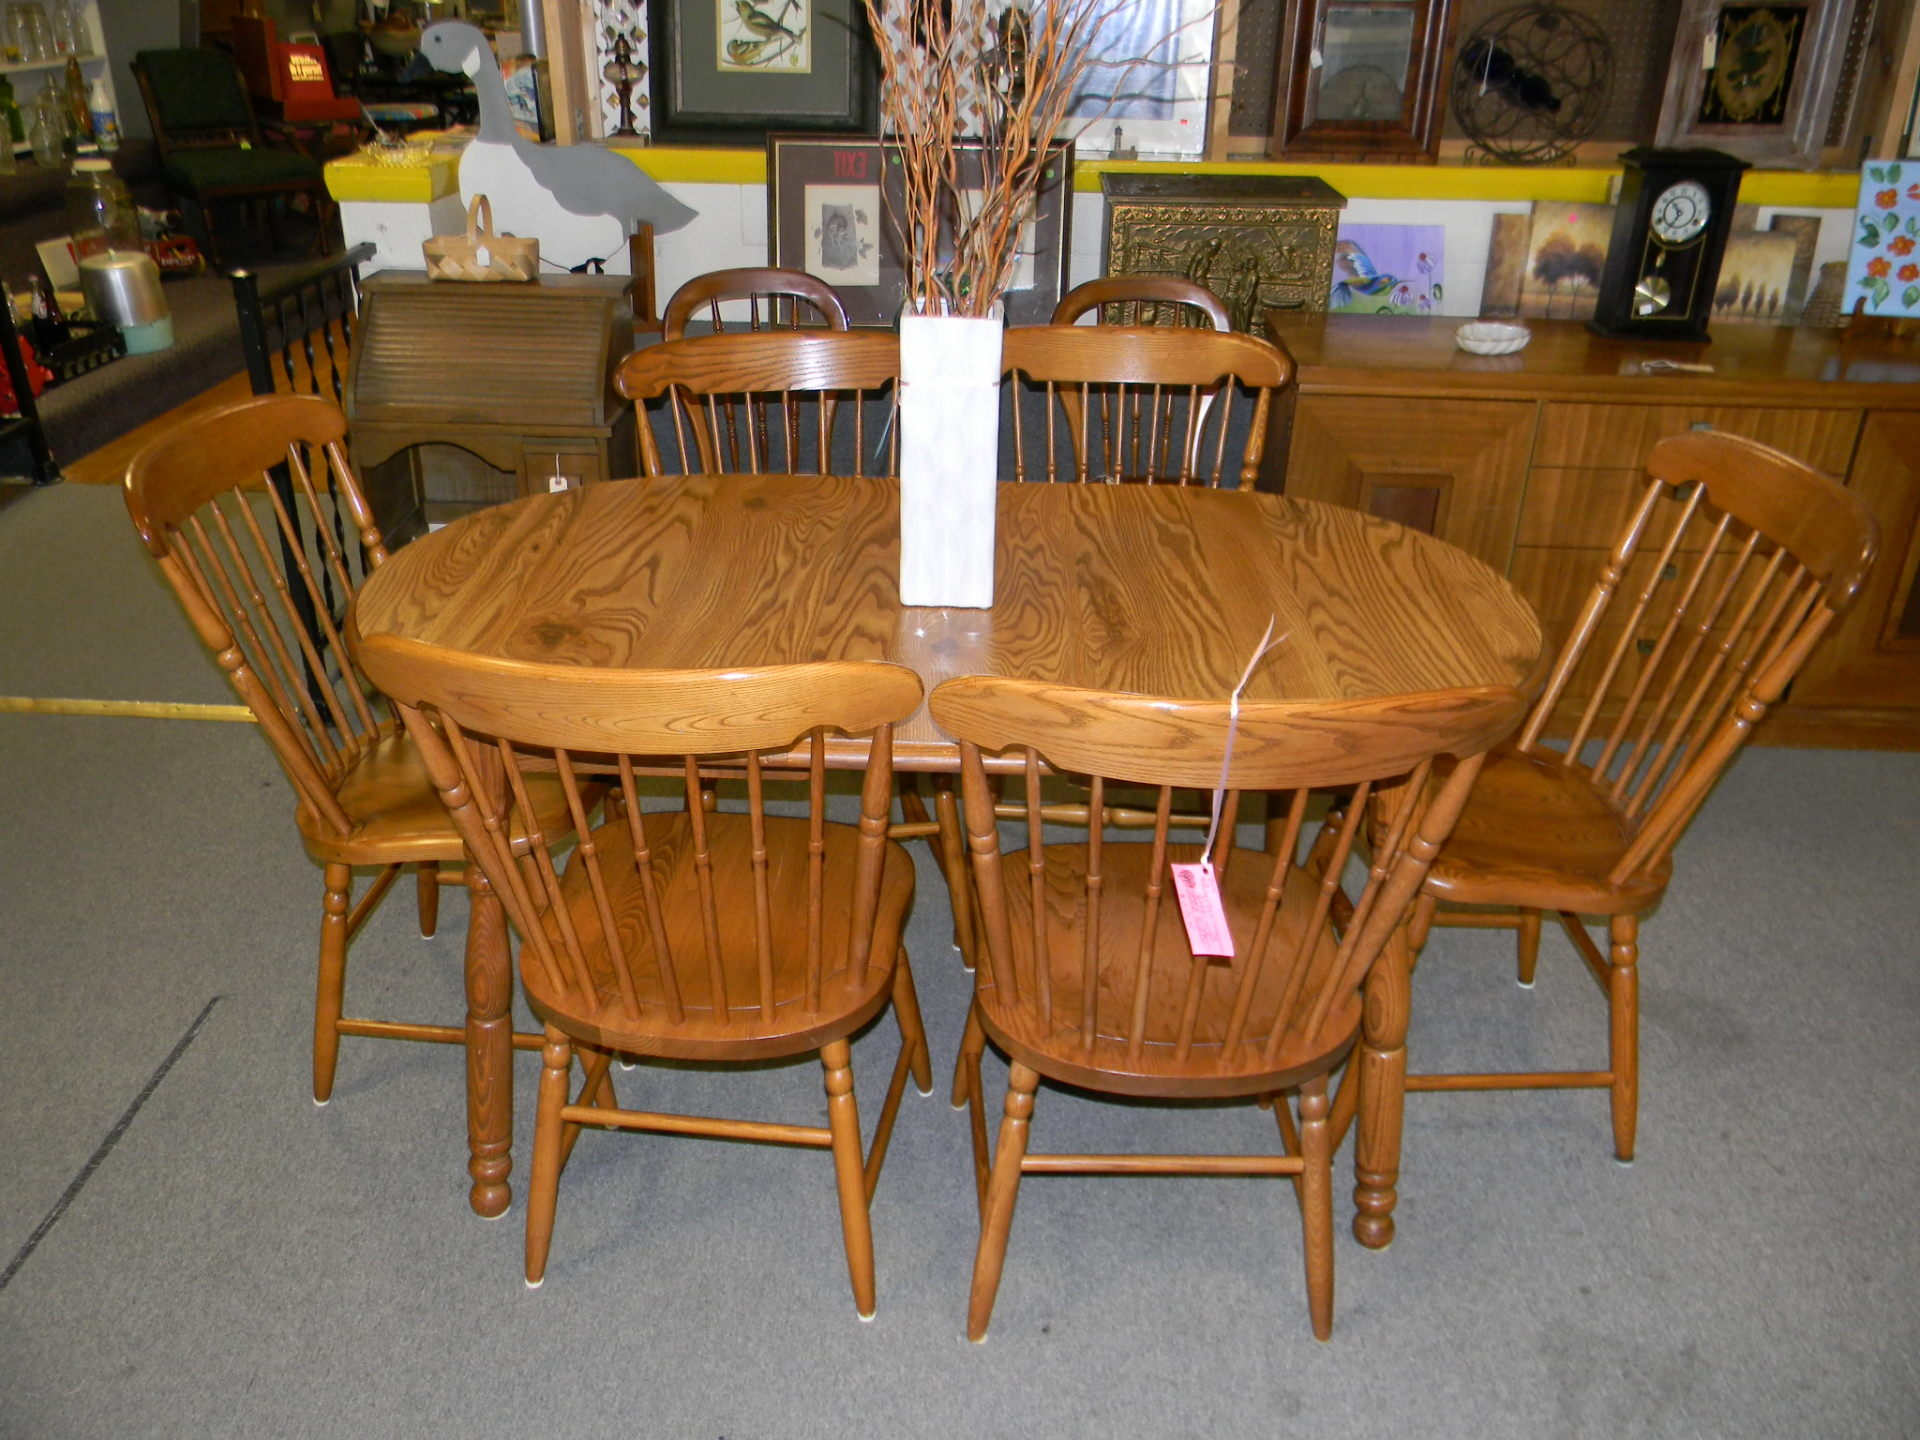 D15 Table with 6 chairs $279